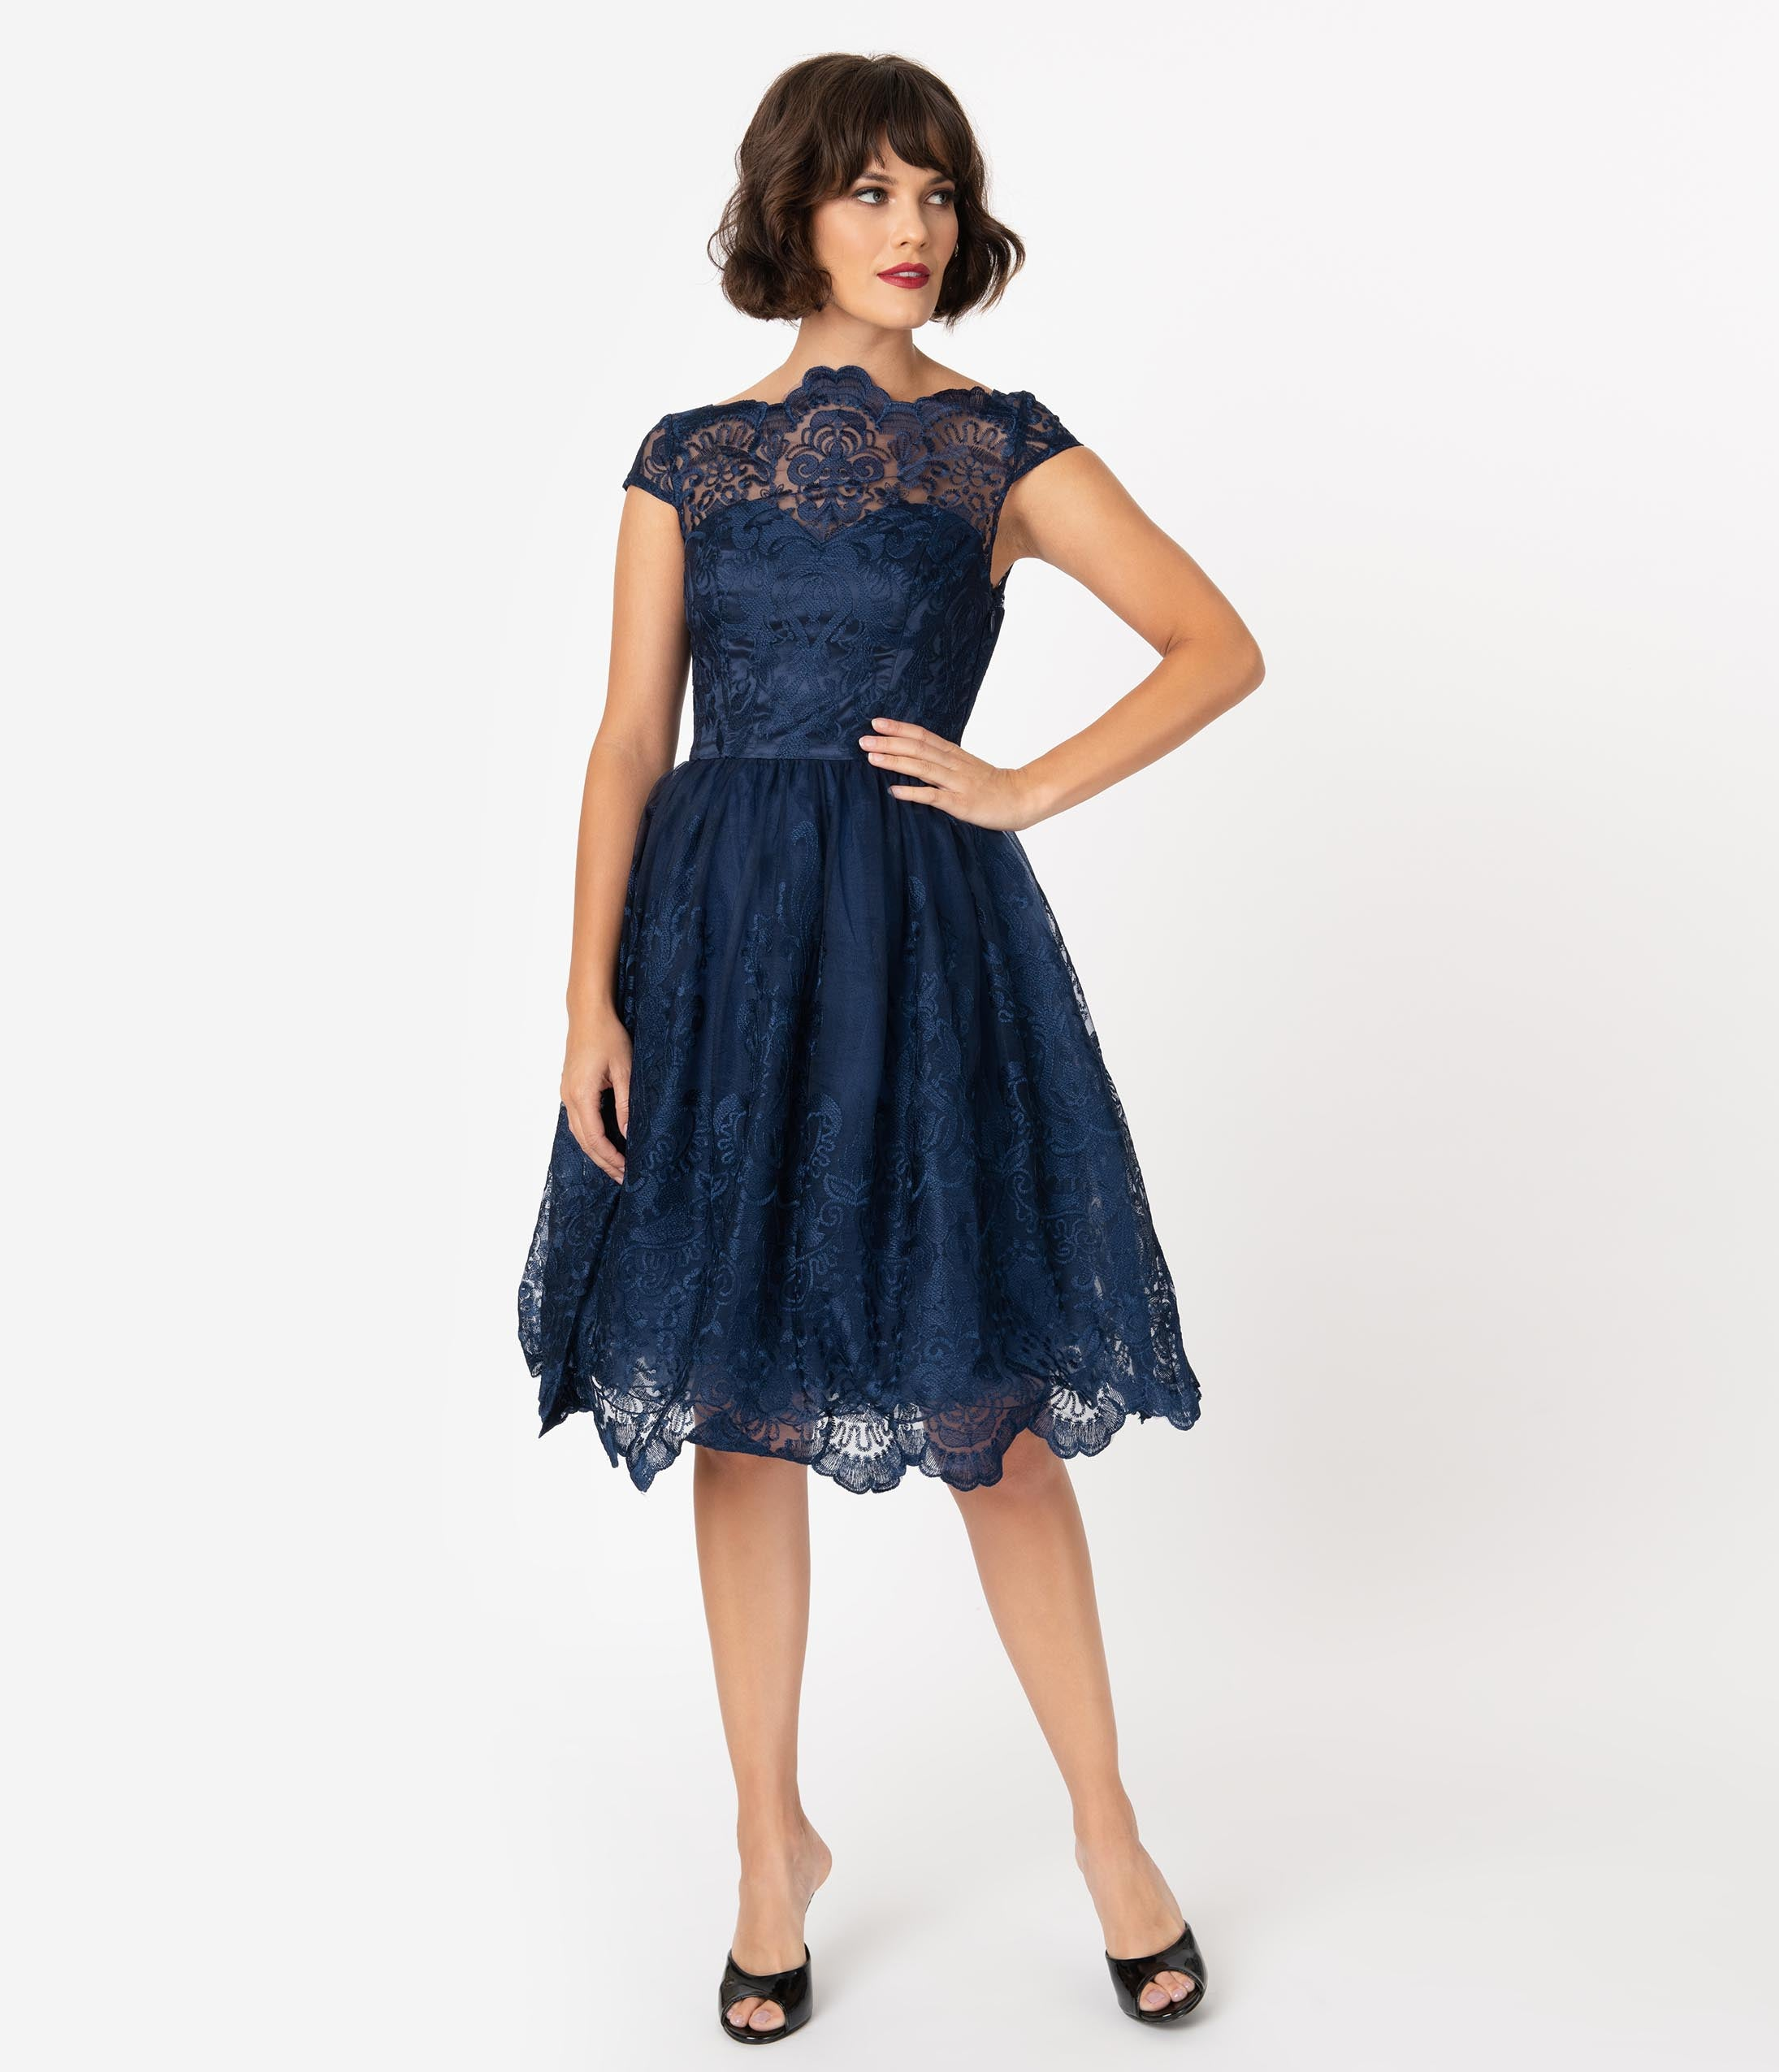 1960s Cocktail, Party, Prom, Evening Dresses Chi Chi London Navy Blue Baroque Embroidery April Tea Dress $98.00 AT vintagedancer.com